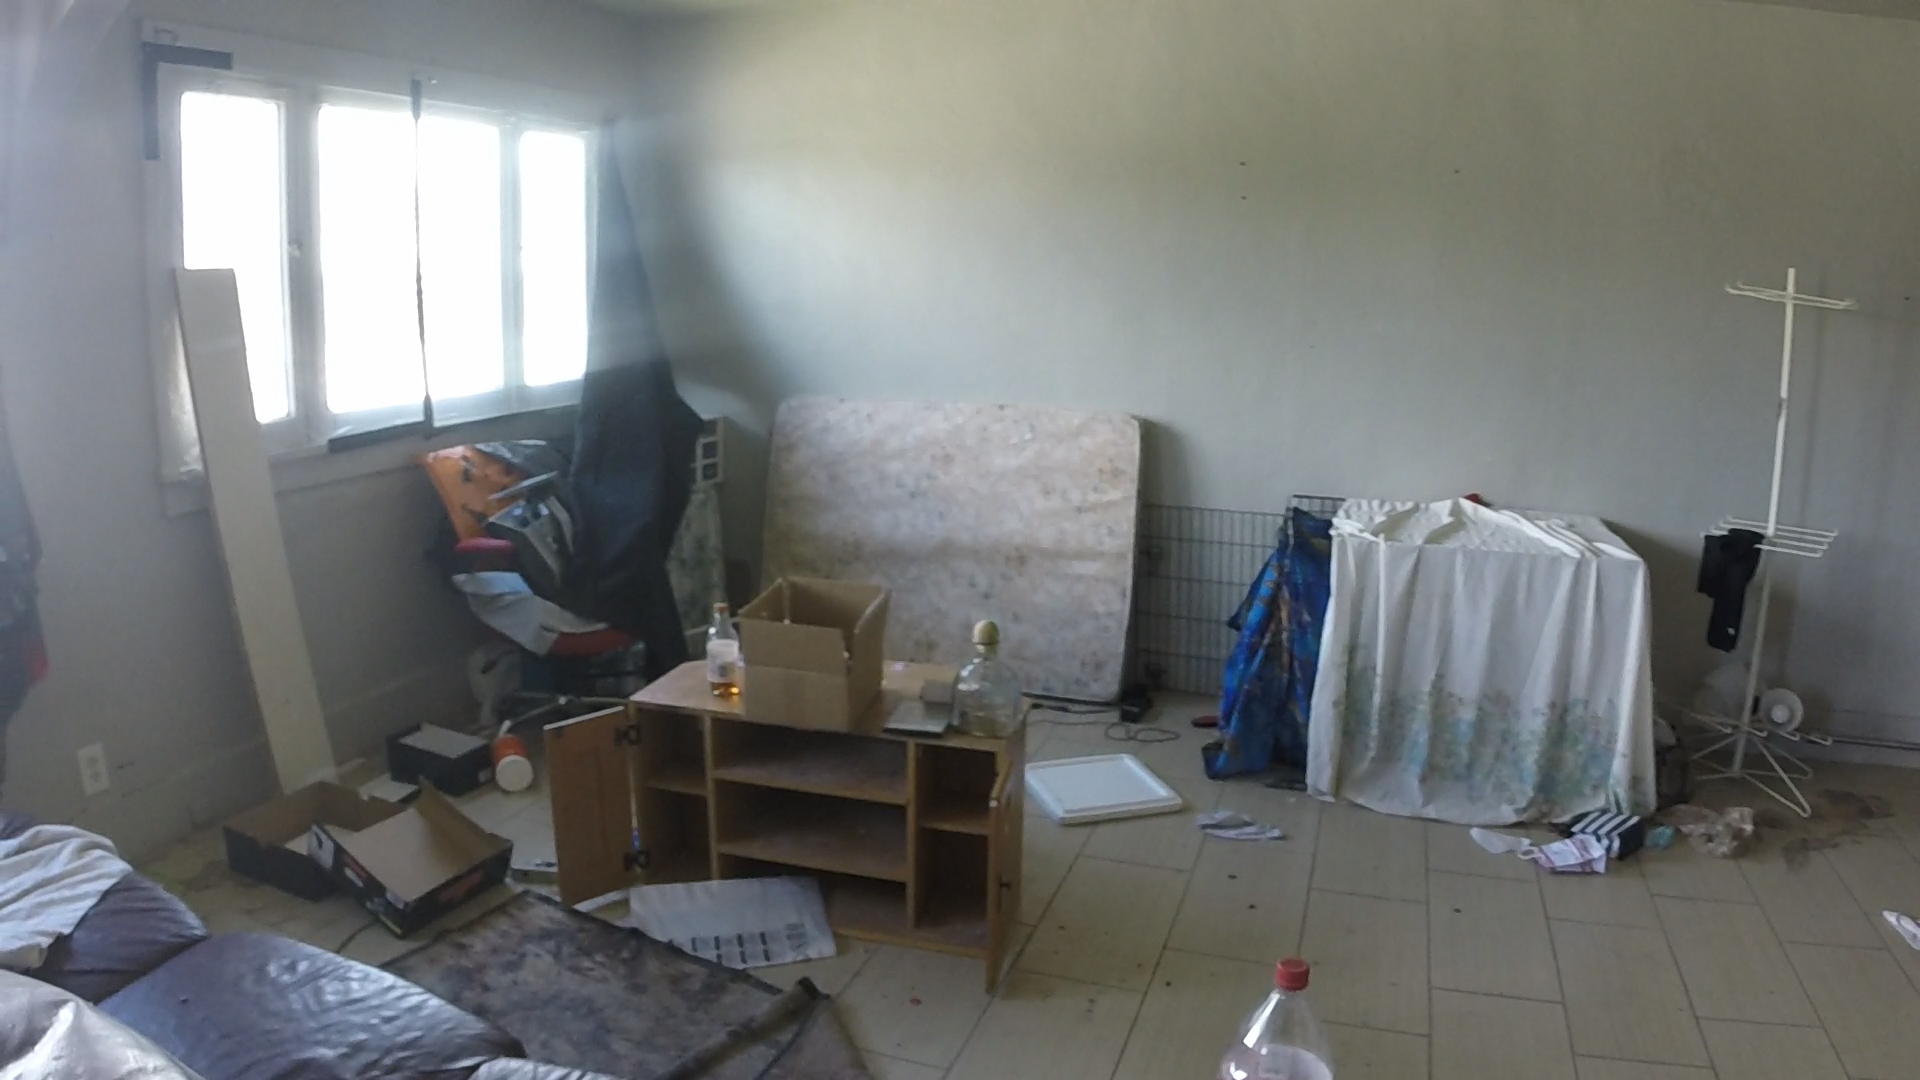 VIDEO: Eviction Aftermath – A Post COVID 19 Moratorium Eviction Story